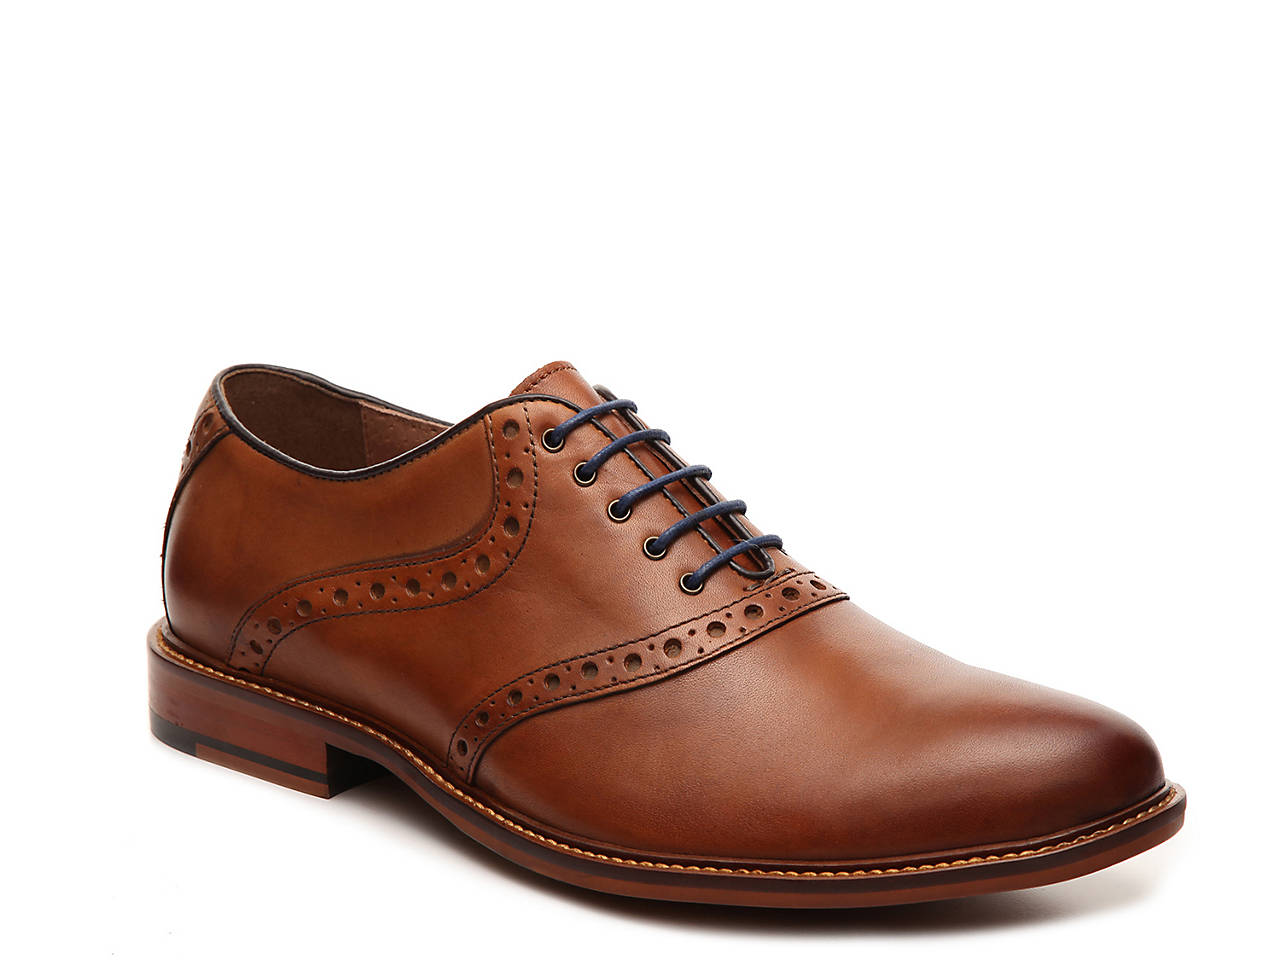 Jc Penny Mens Dress Shoes